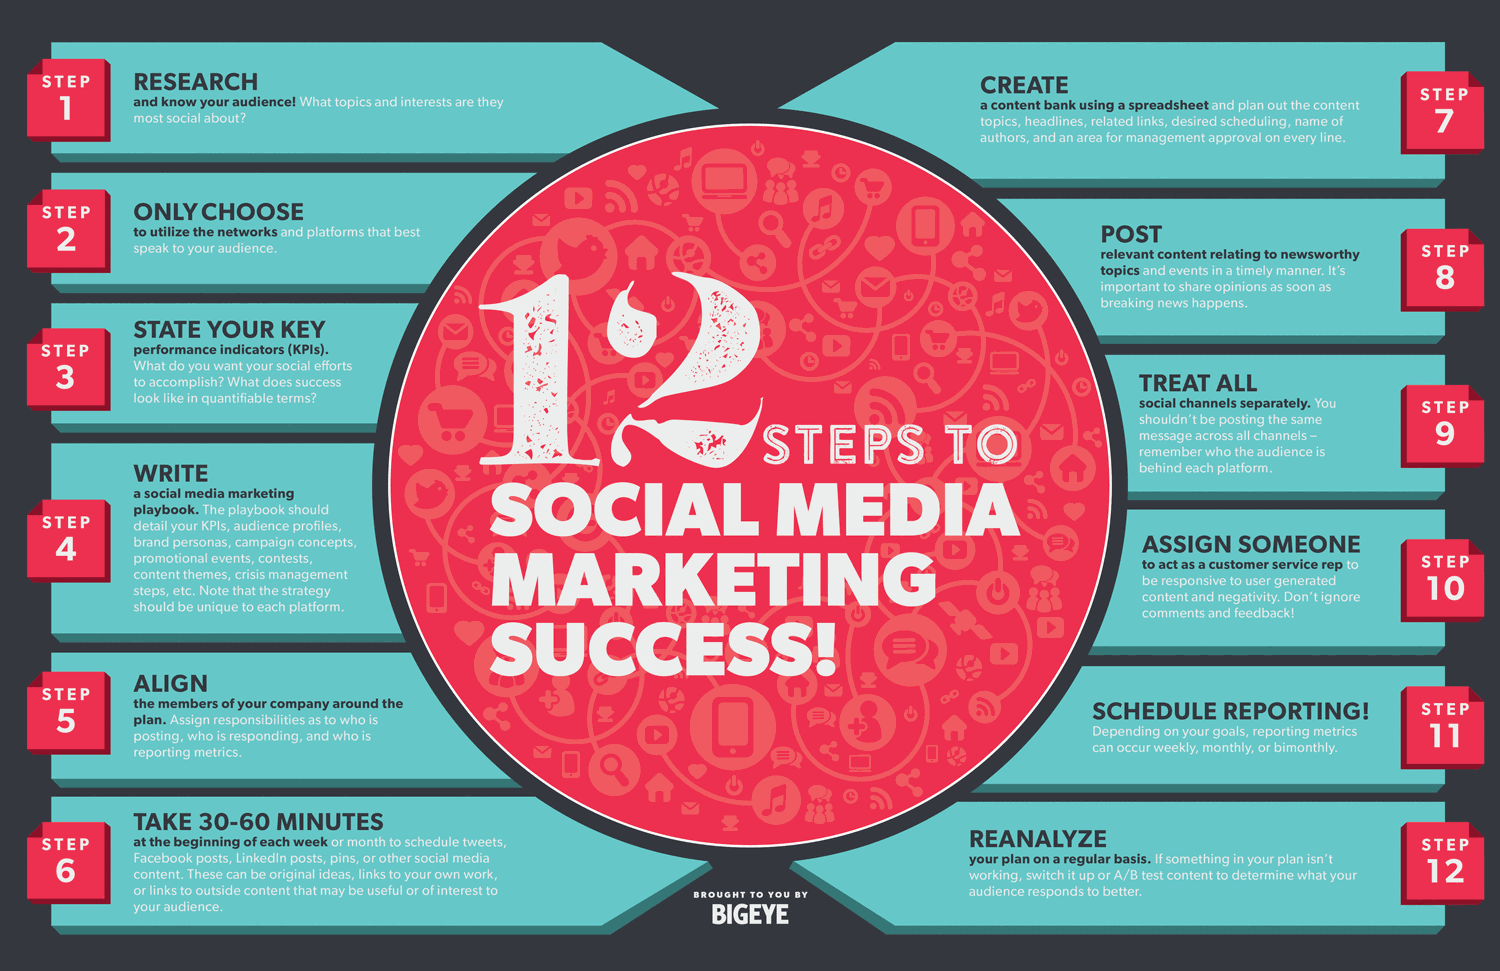 12 Steps to Social Media Marketing Success | Daily Infographic